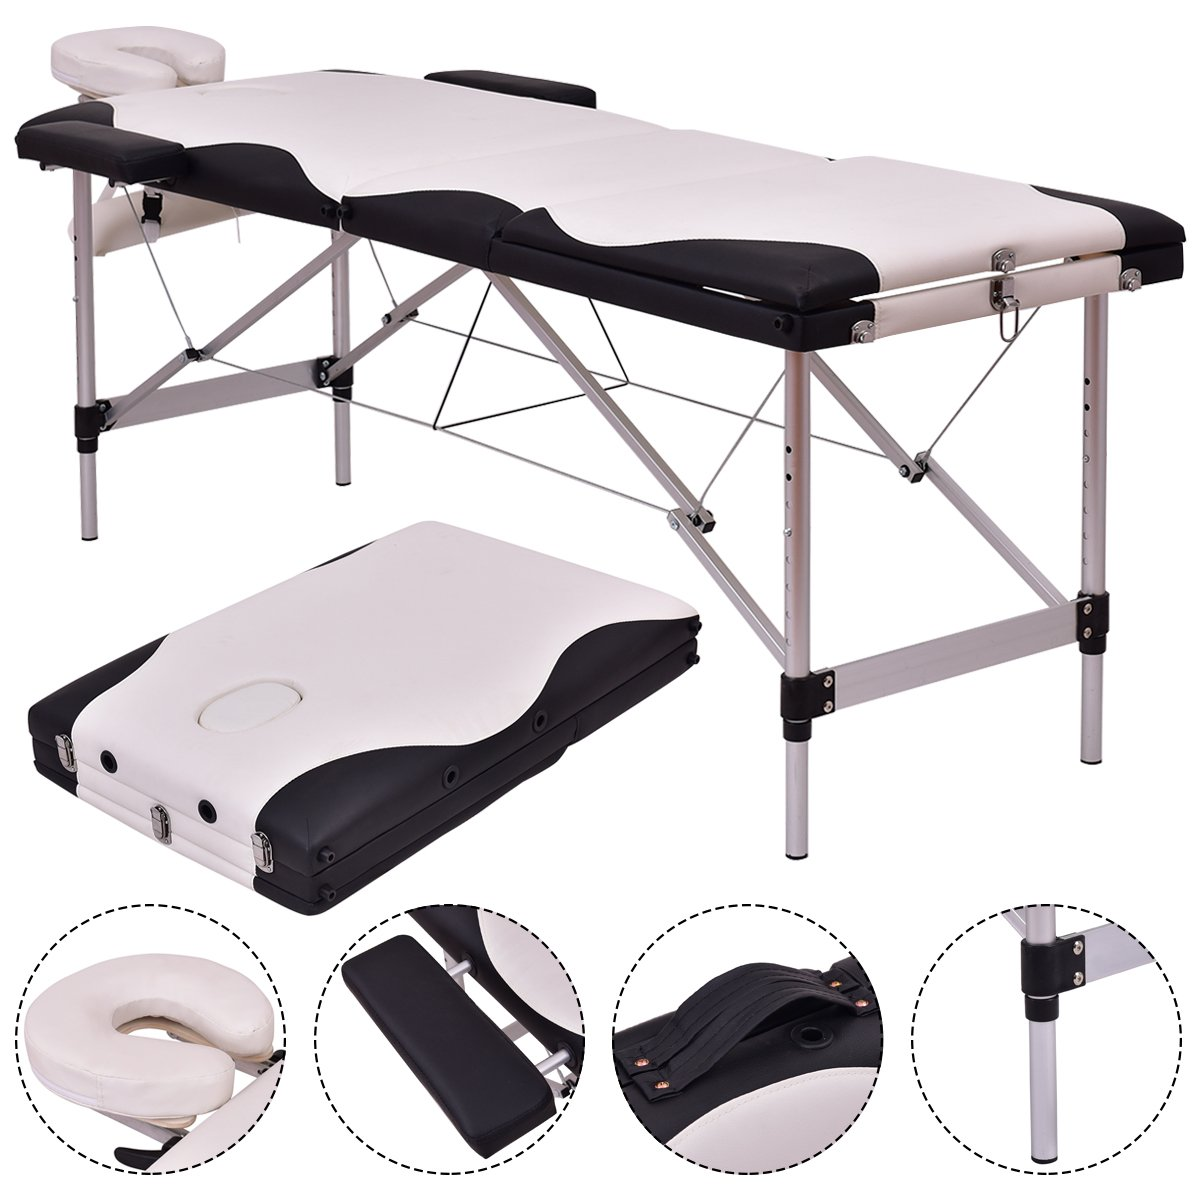 3 Section Professional Portable Massage Table Bed, Adjustable Massage for Salon Beauty Physiotherapy Facial SPA Tattoo Household